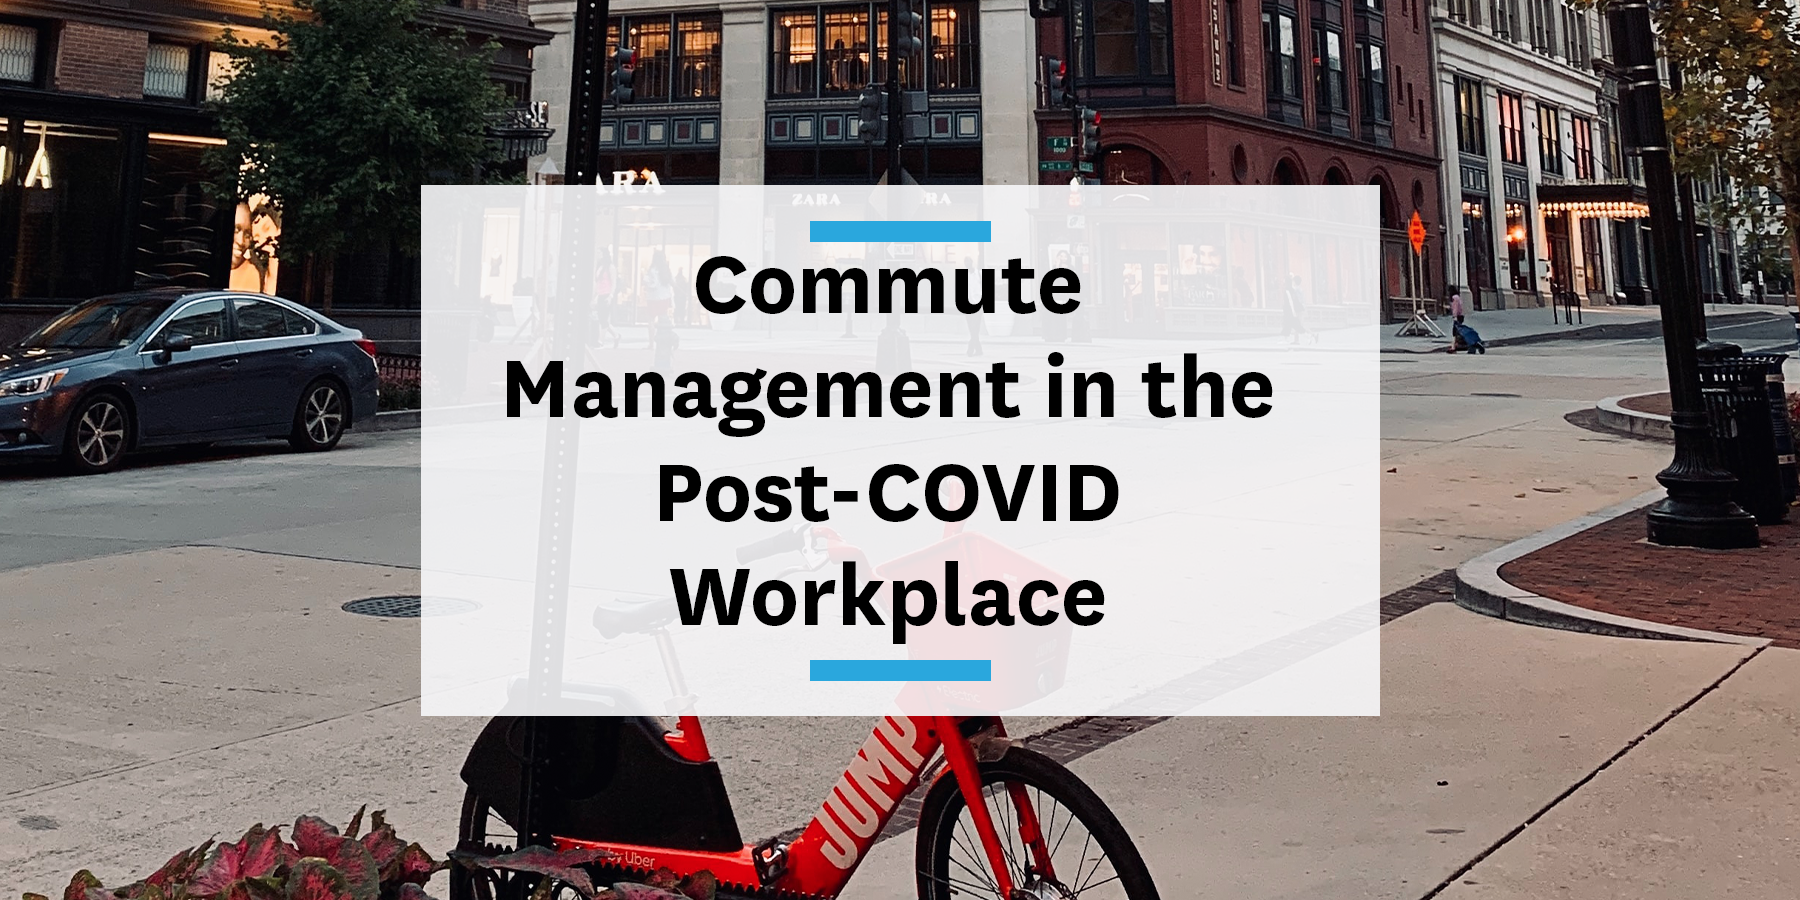 commute-managemet-in-the-post-covid-workplace